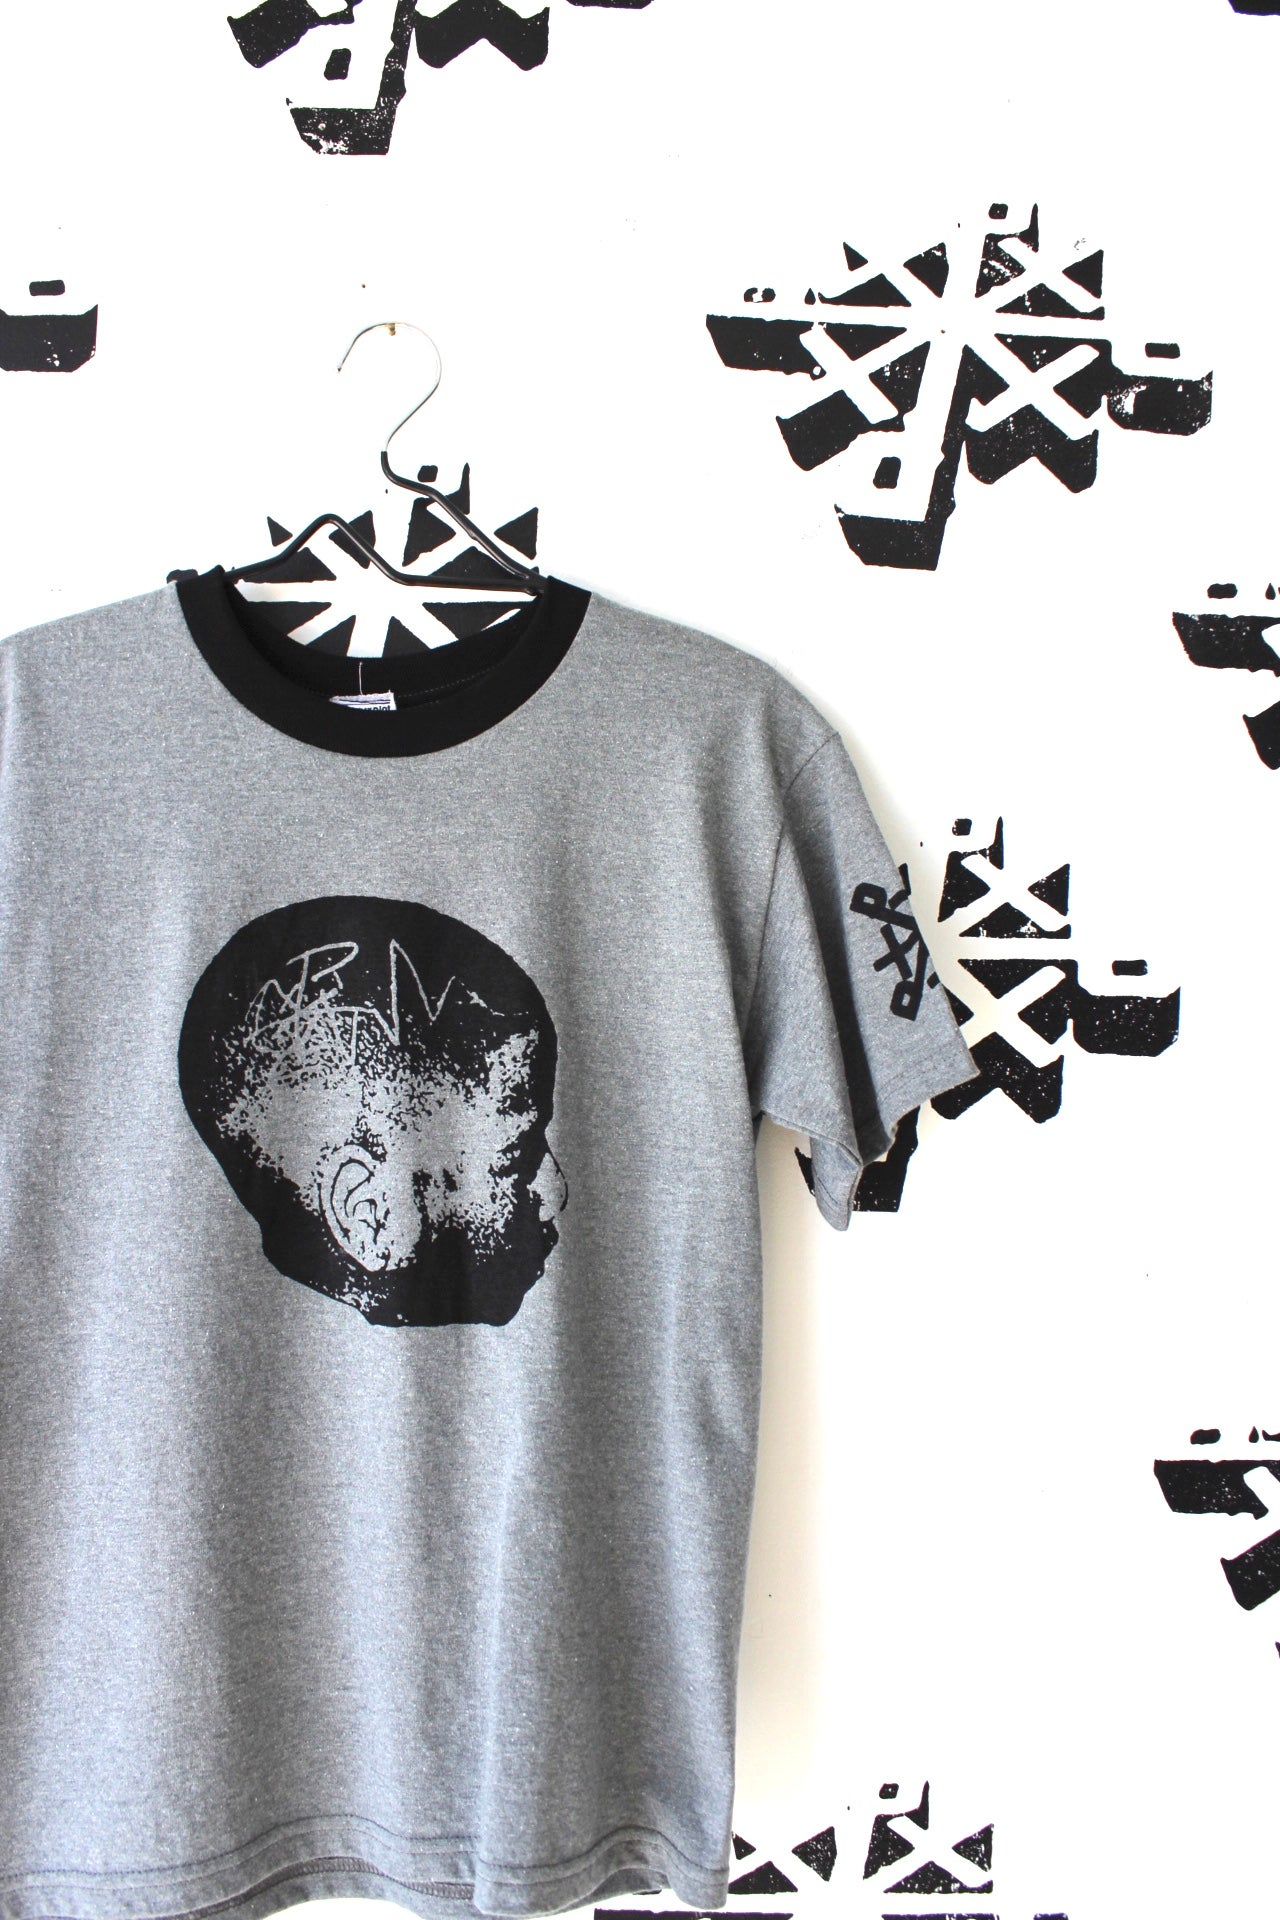 Image of head on straight ringer tee in gray/black